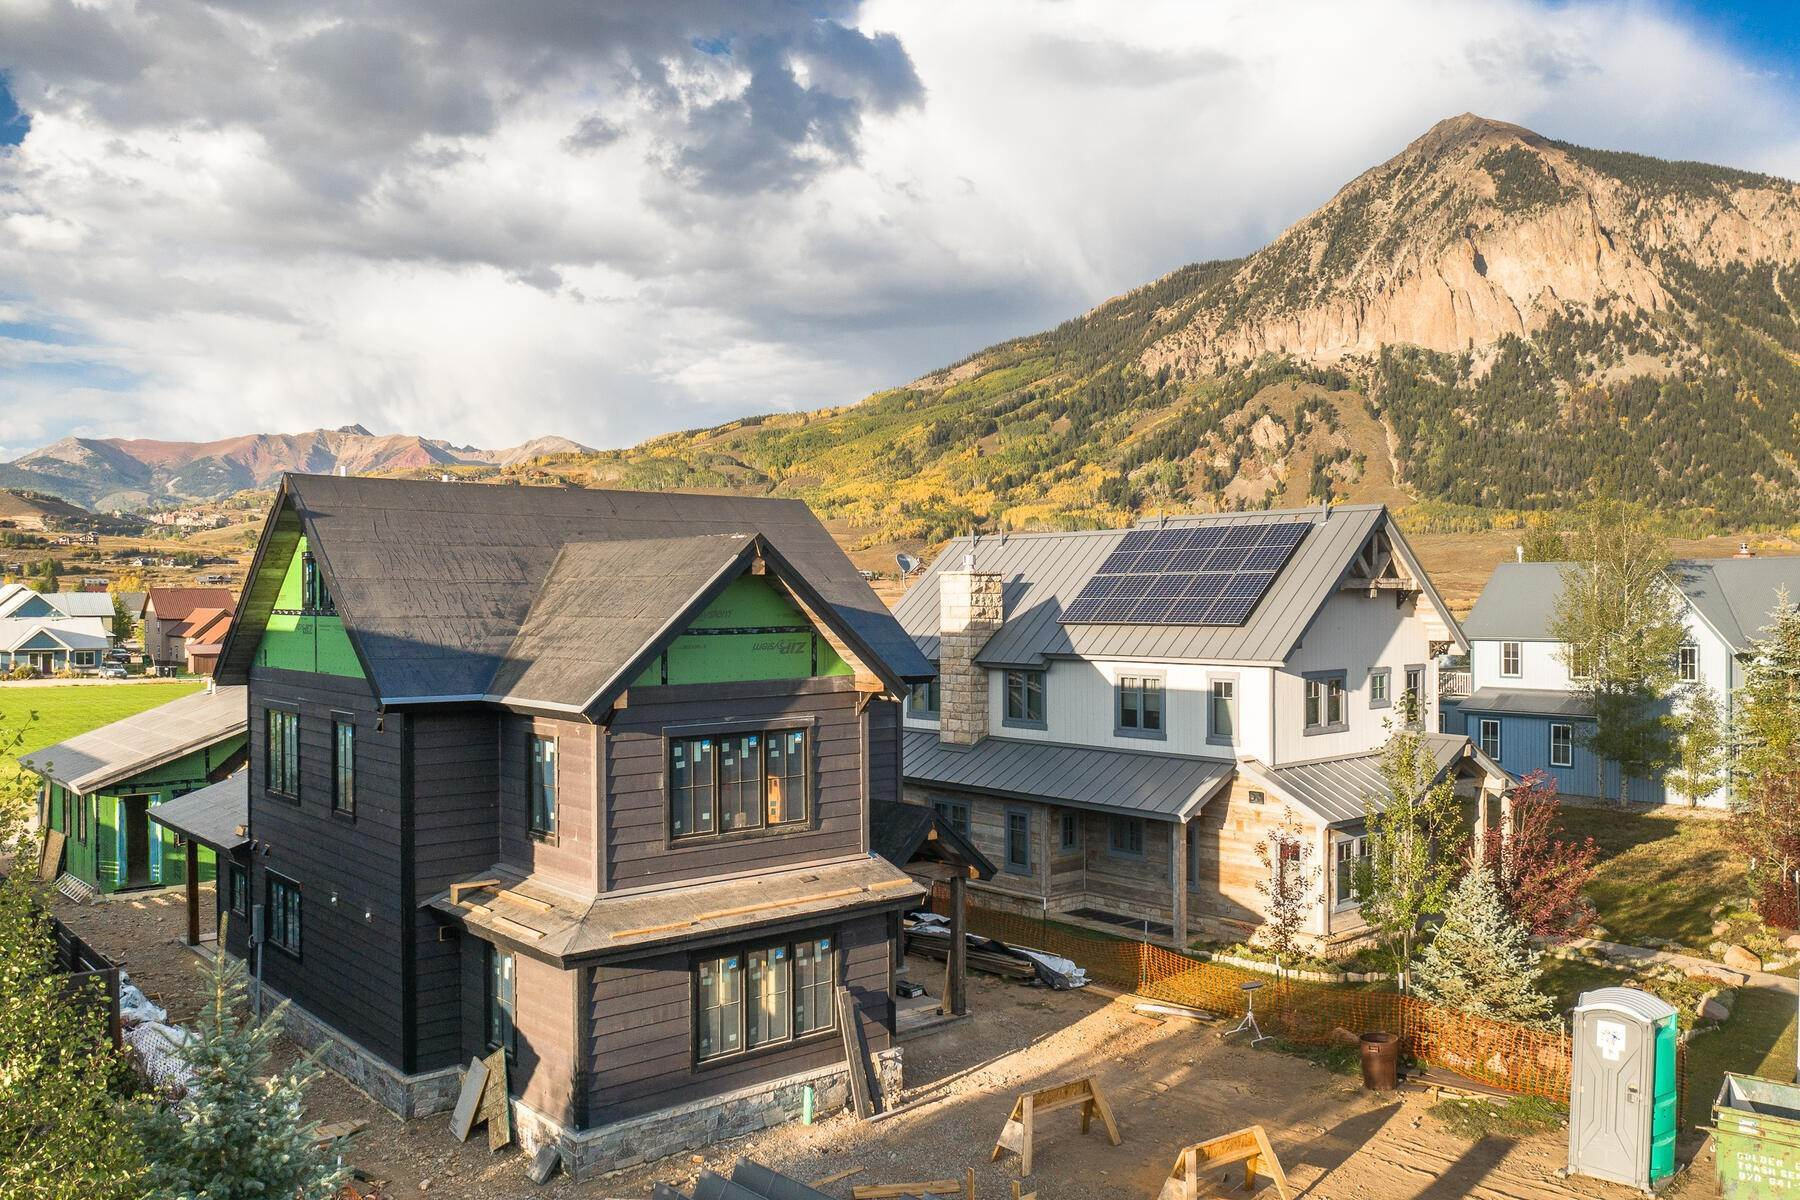 Single Family Homes for Sale at 821 Elk Avenue Crested Butte, Colorado 81224 United States